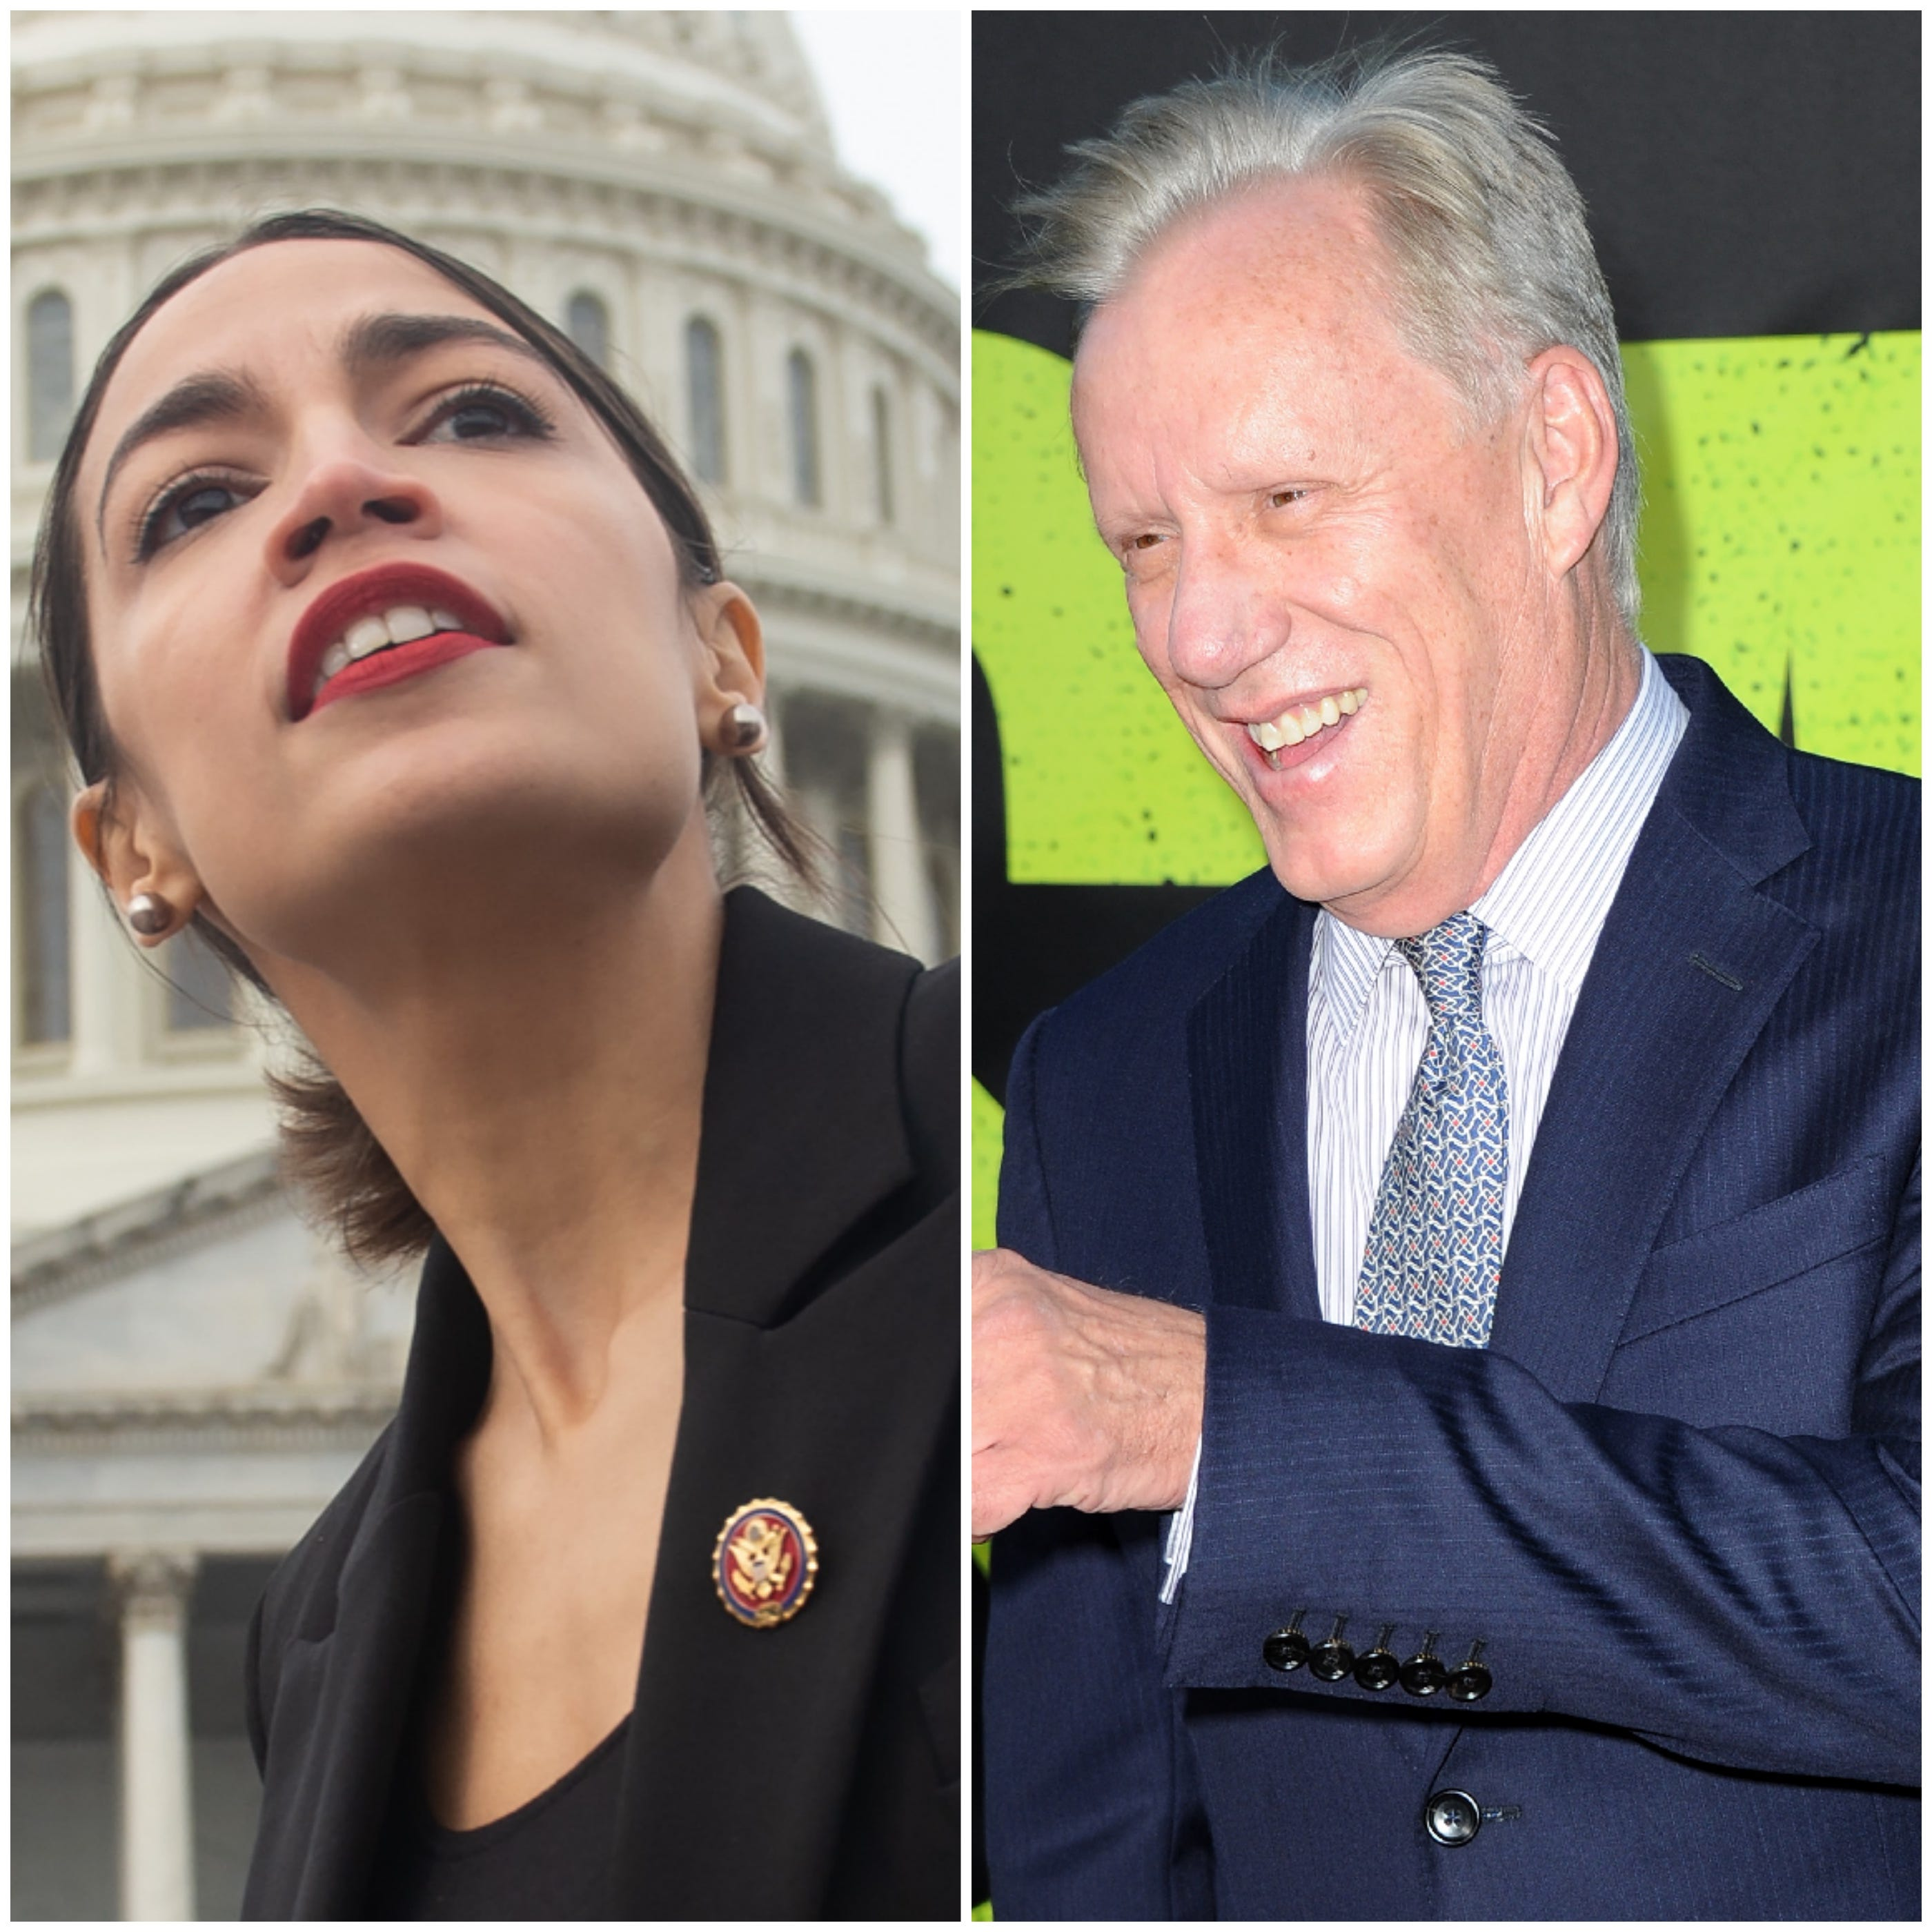 James Woods slams Rep. Alexandria Ocasio-Cortez as 'the most dangerous person in America'